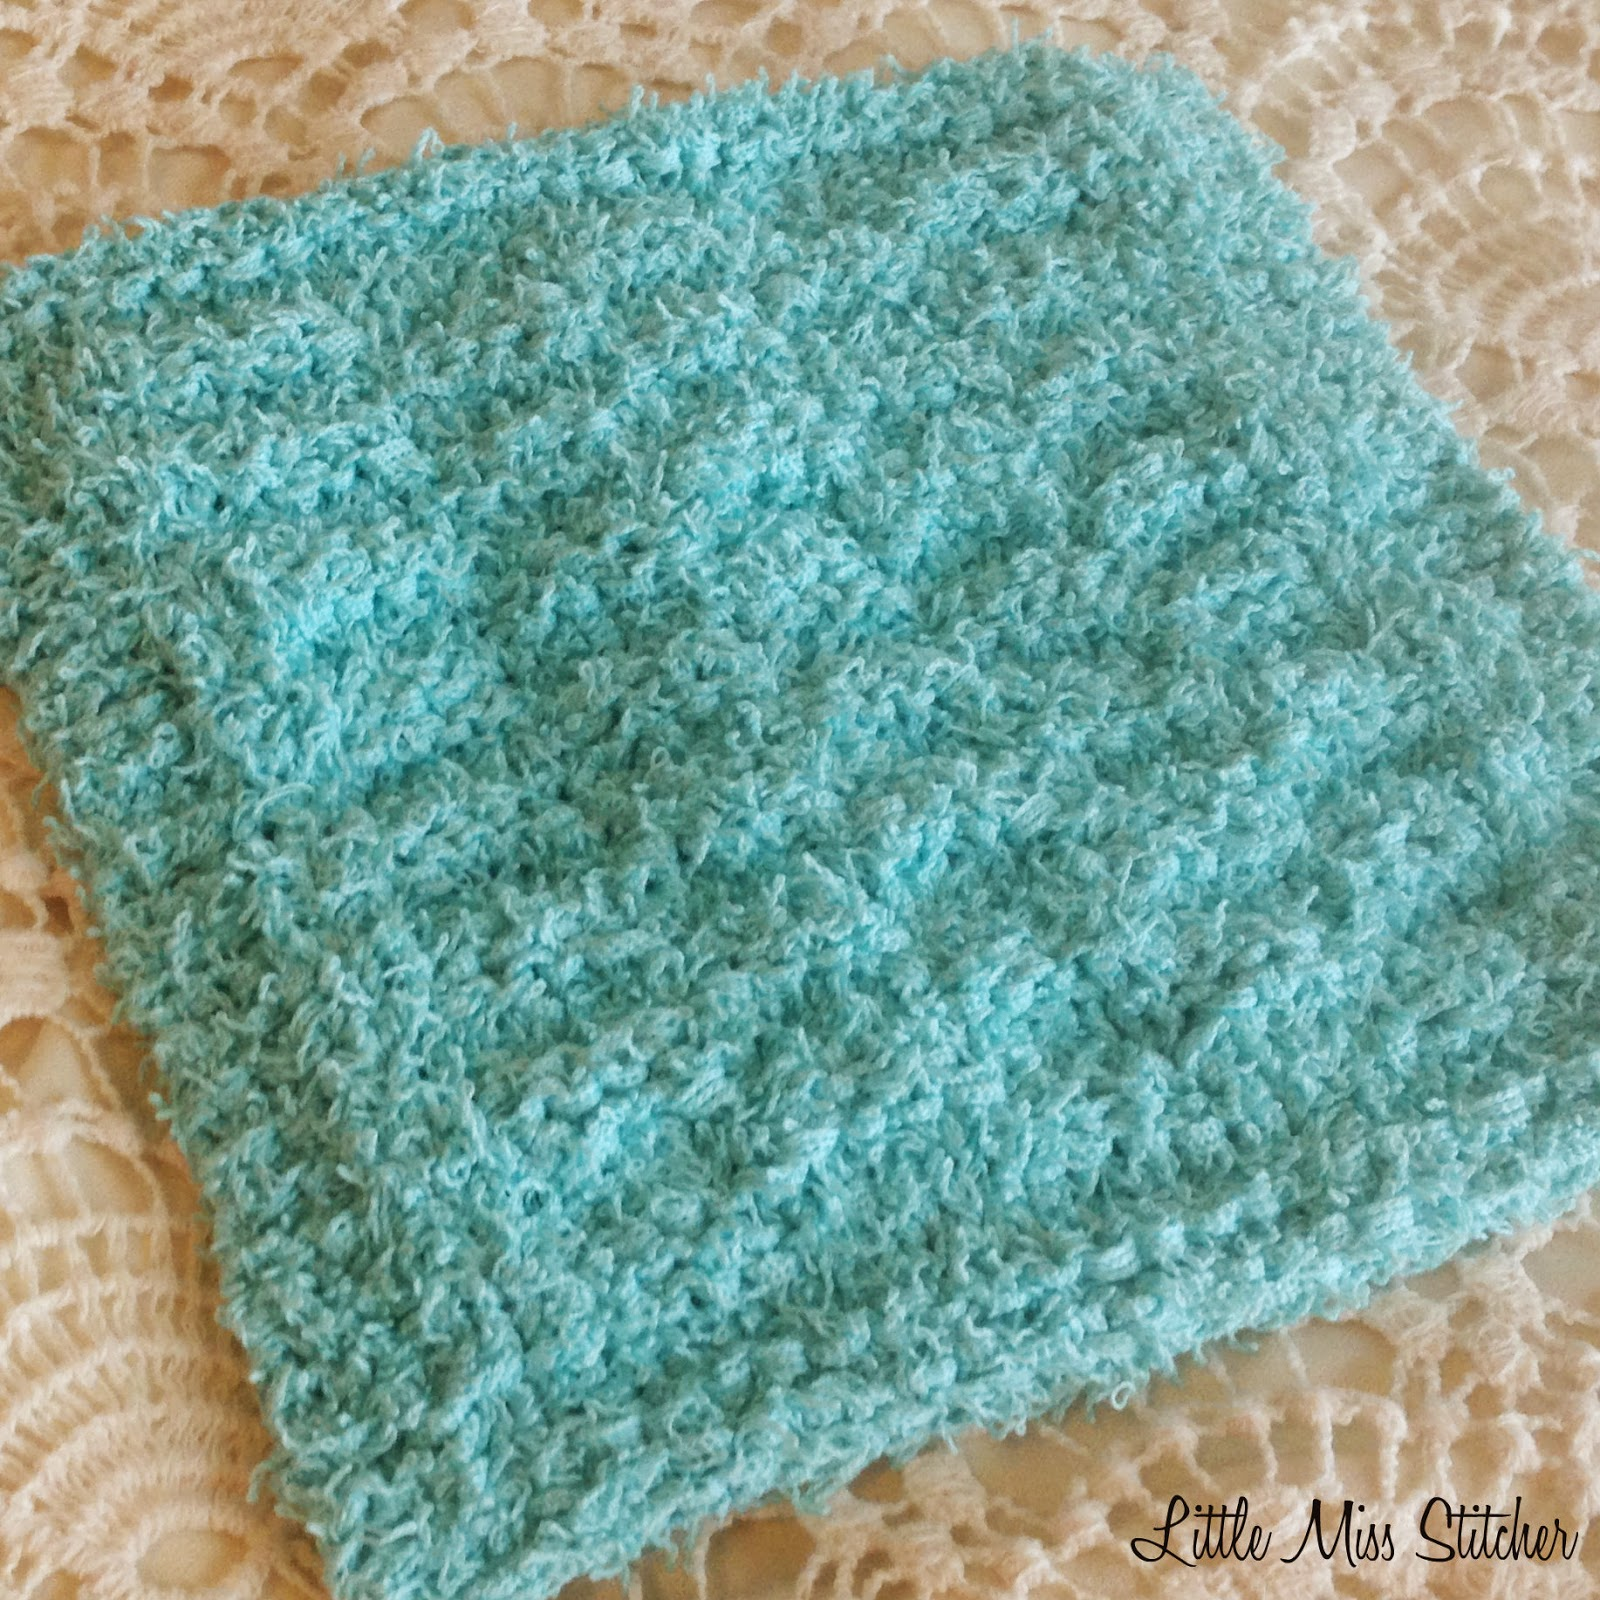 Free Knitted Round Dishcloth Patterns : Little Miss Stitcher: Scrubby Dishcloth Pattern